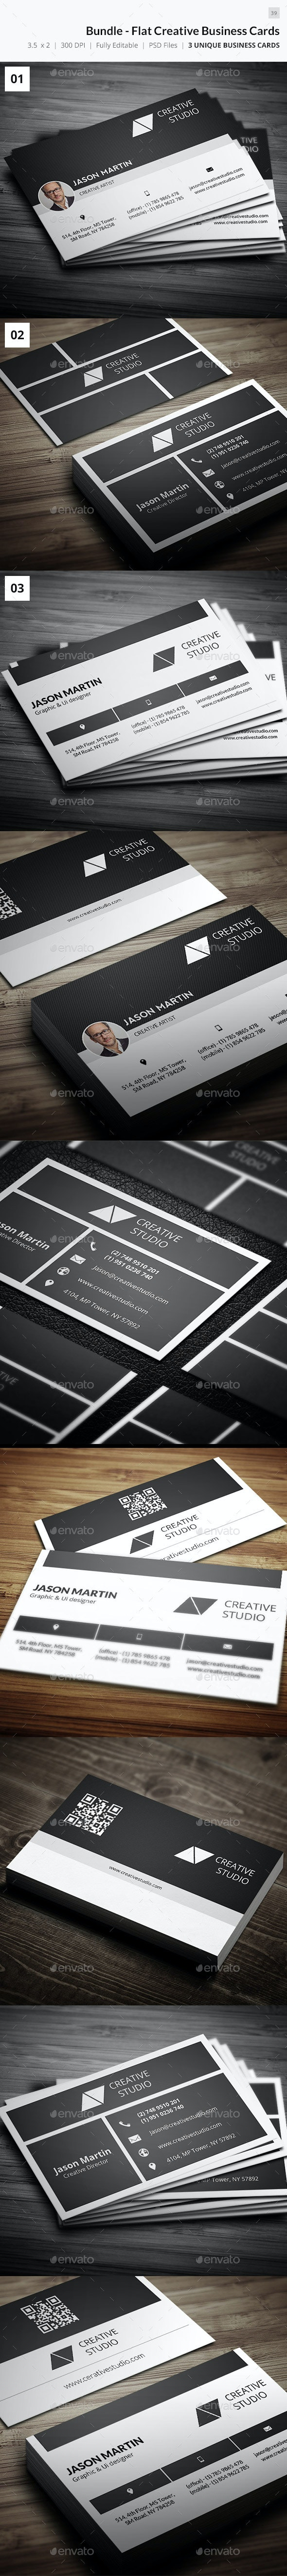 Bundle - Creative Flat Business Cards - 39 - Creative Business Cards